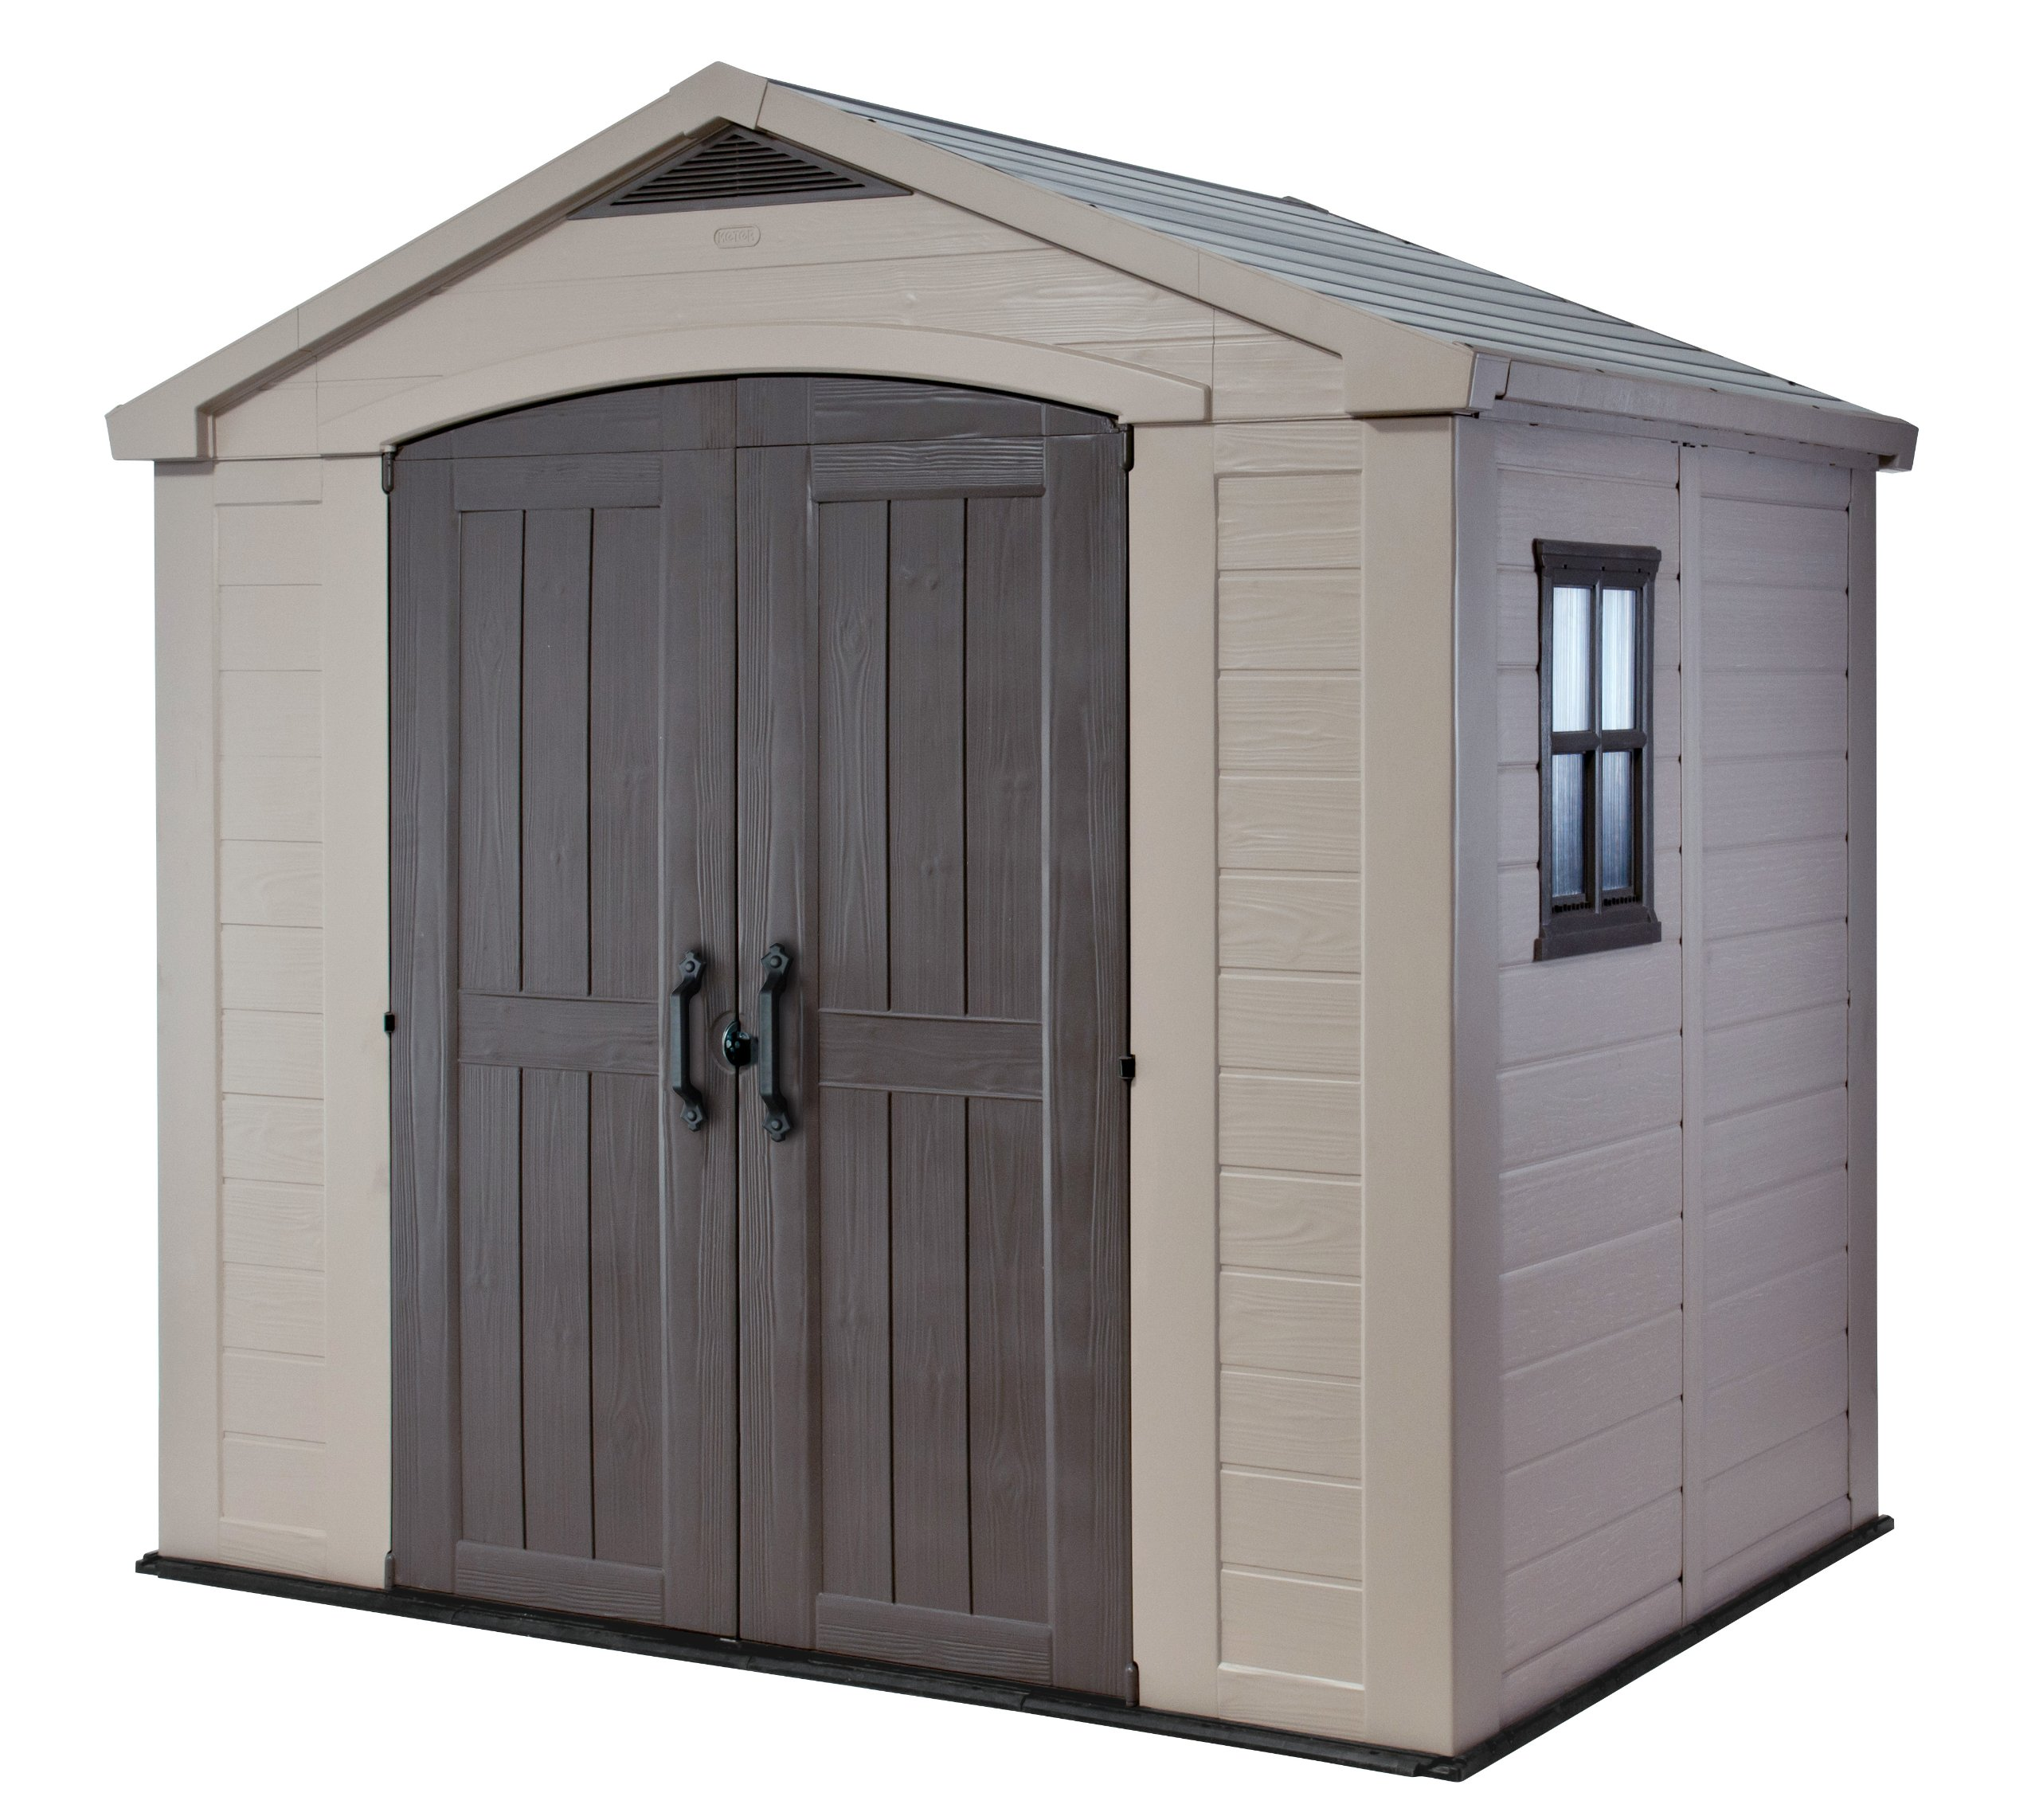 storage sheds outdoor rubbermaid weather resin kp shed x plastic under c all manor horizontal keter